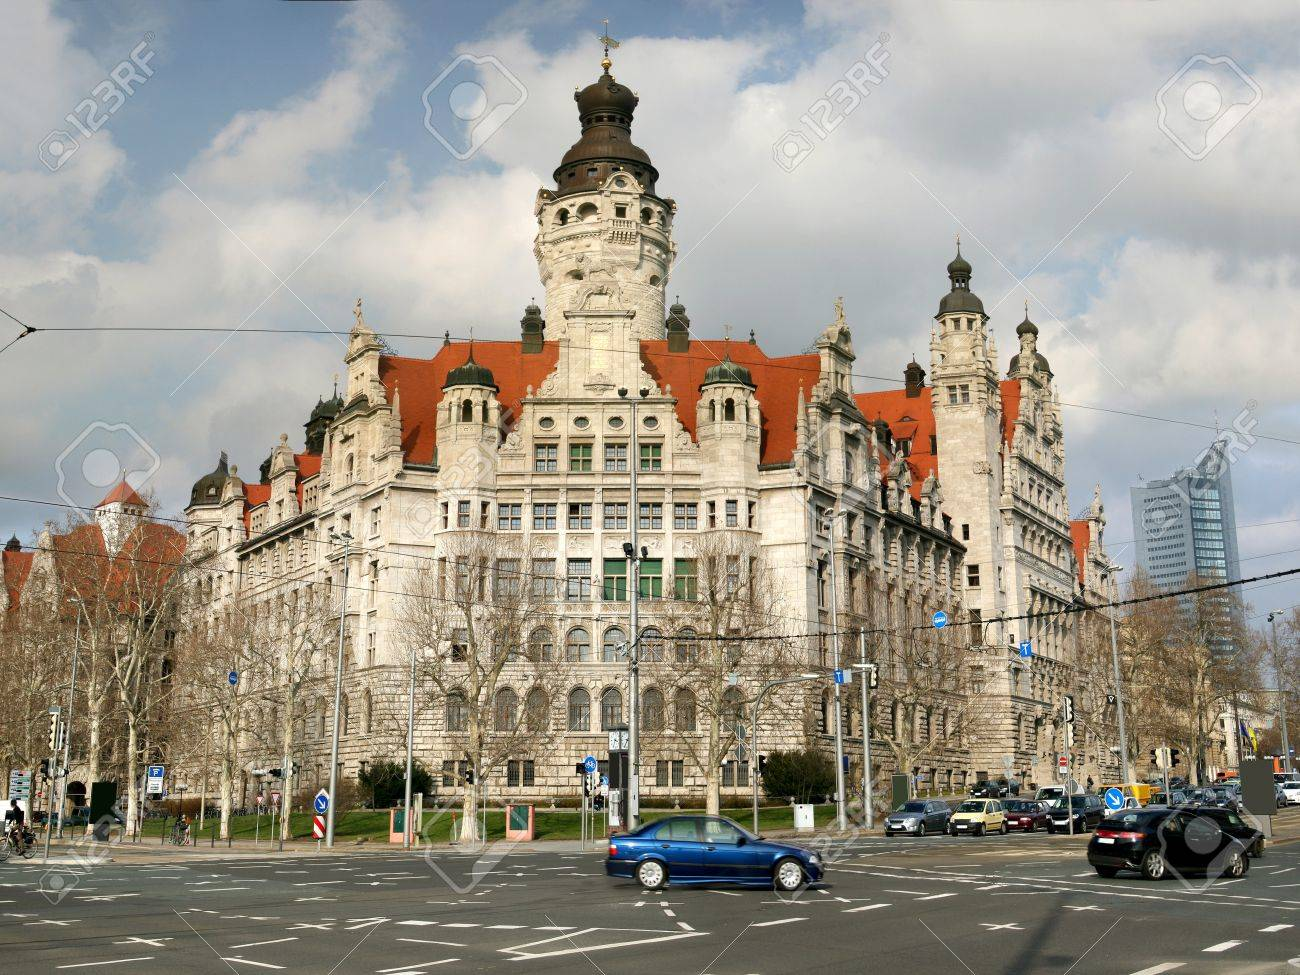 Neues Rathaus New Town Hall In Leipzig Germany Stock Photo Picture And Royalty Free Image Image 8665324